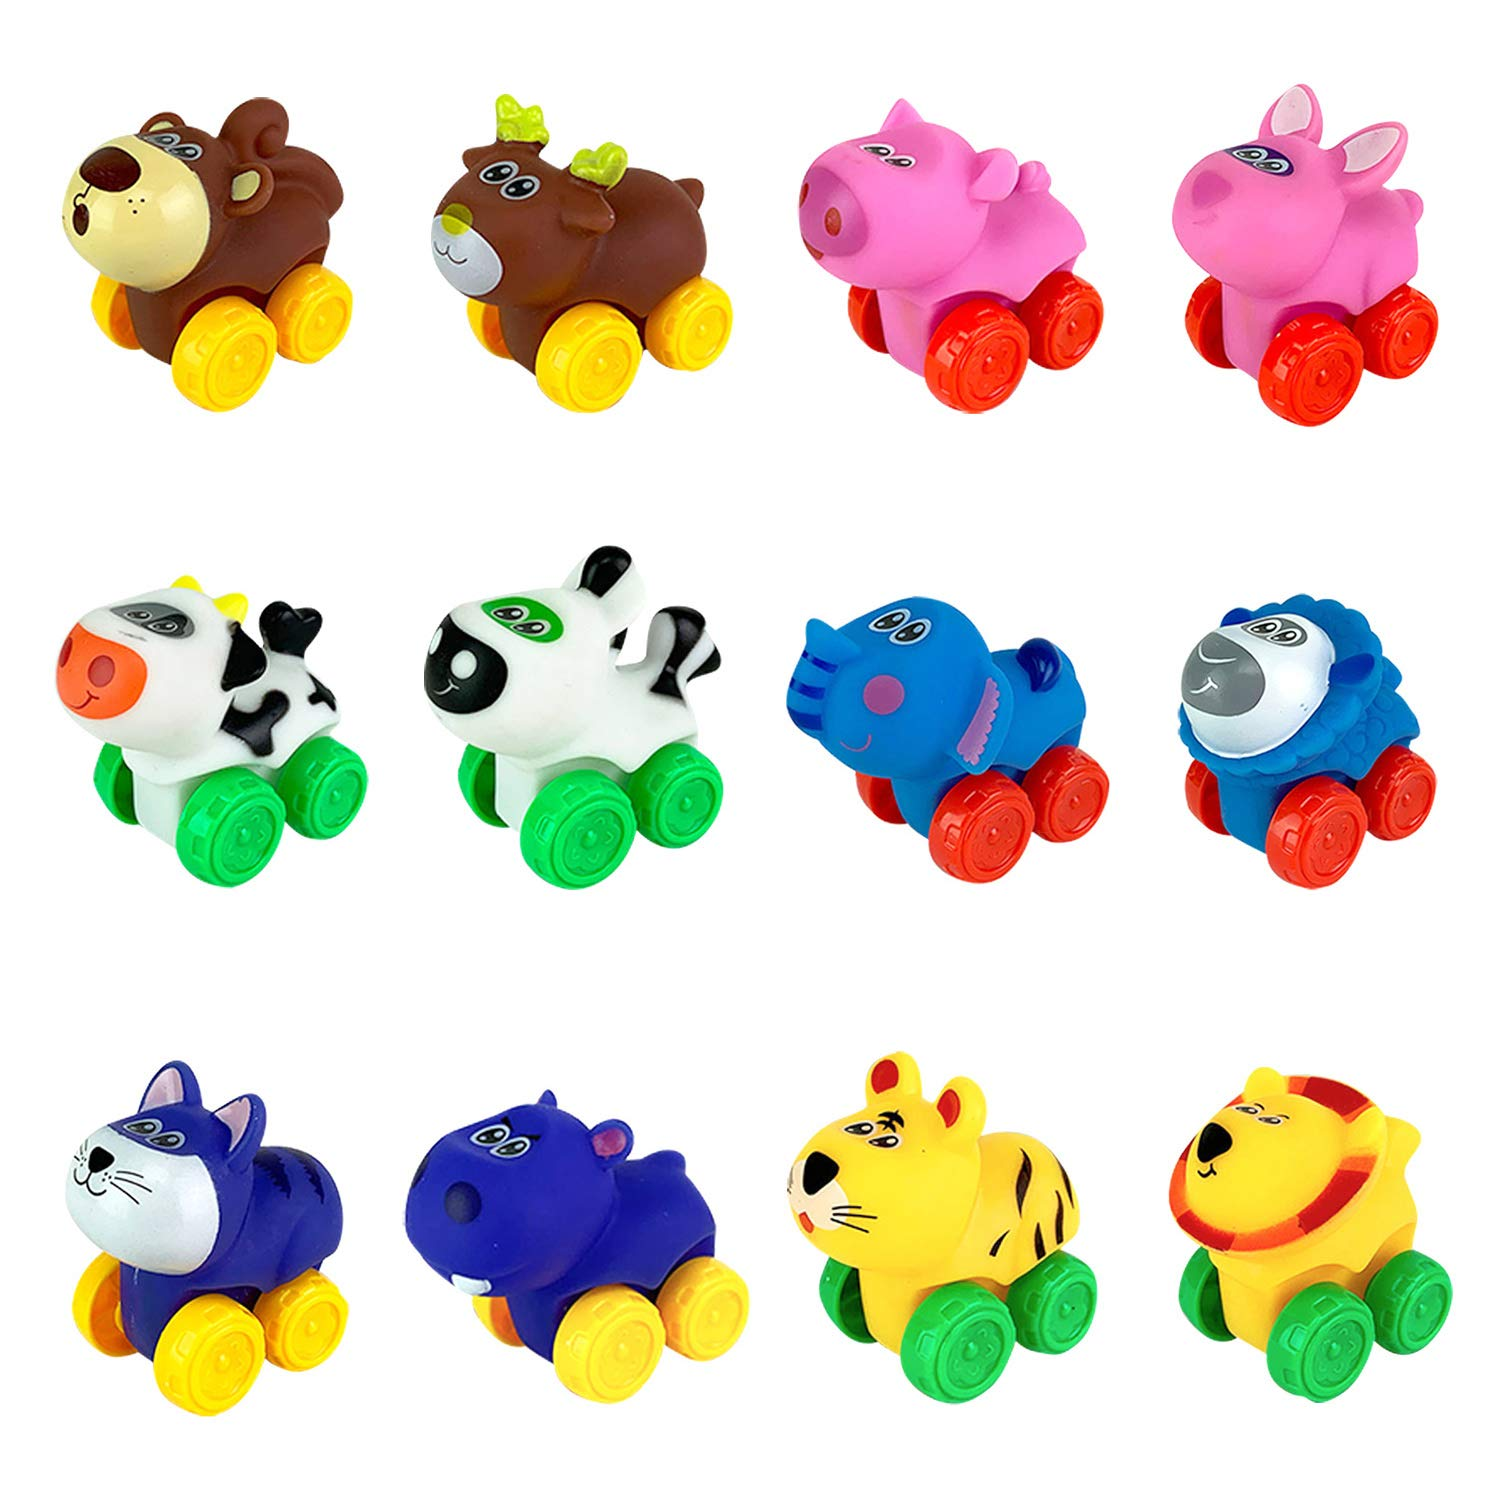 Liberty Imports 12 Pack Soft Rubber Baby Toy Cars in Bucket   Cartoon Animal Vehicles Push and Go with Wheels for Babies Toddlers and Kids 1 Dozen